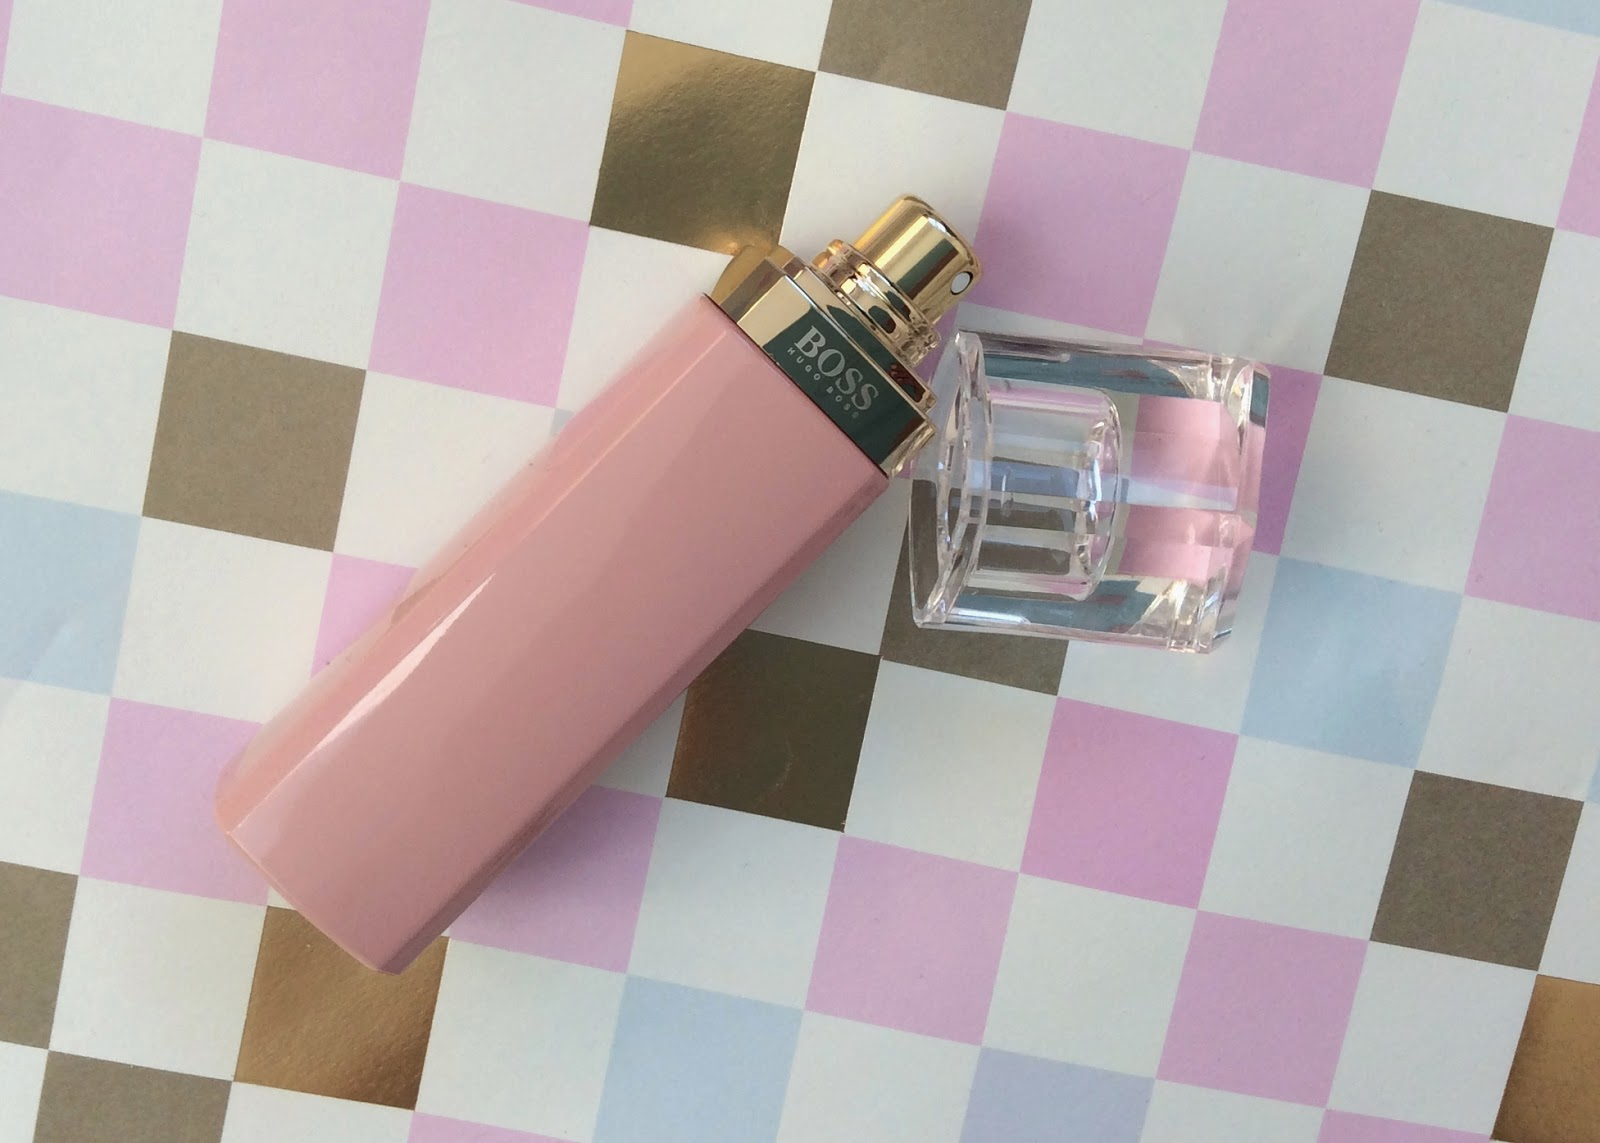 My new summer fragrances - Marc Jacobs Daisy Delight and ...